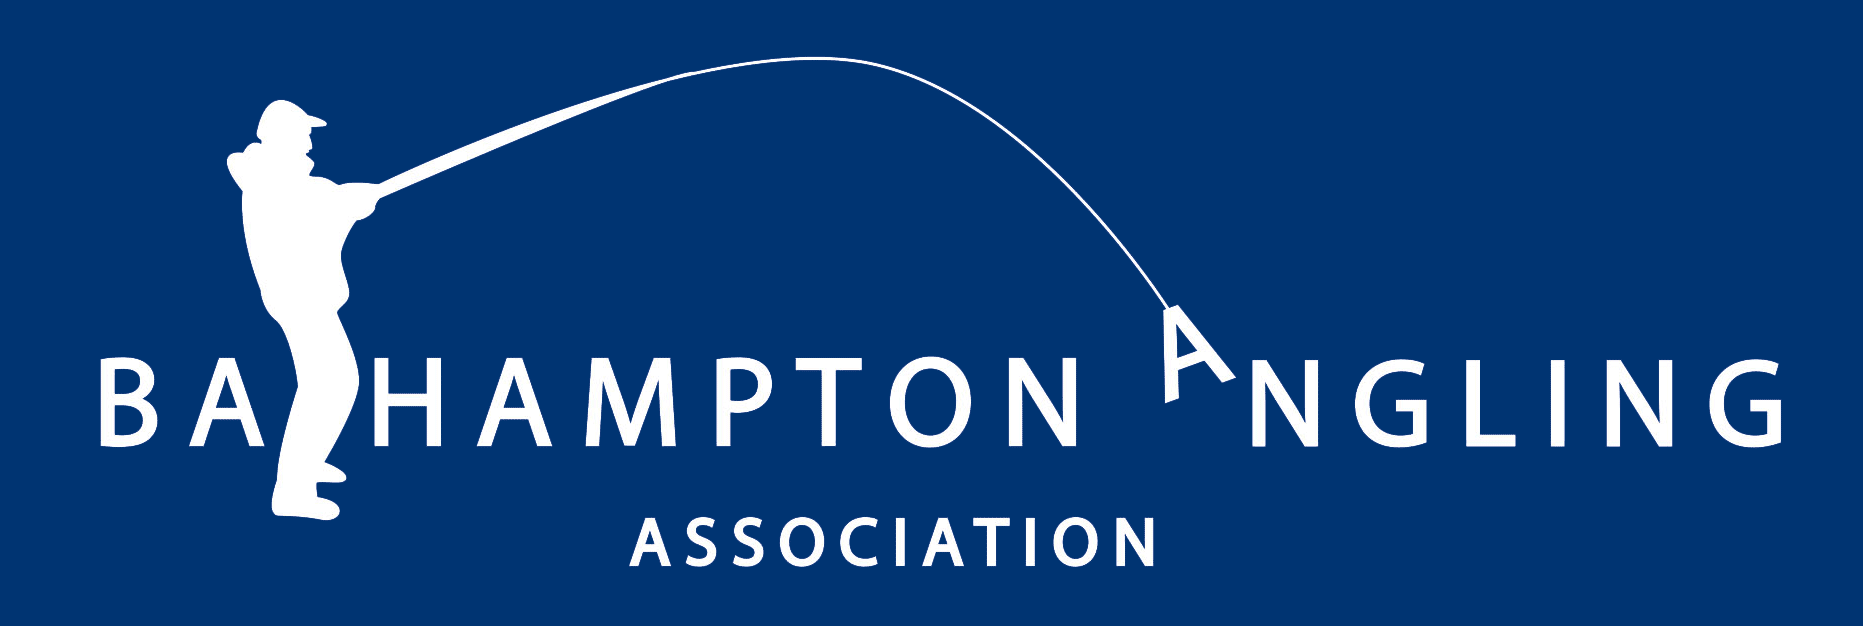 Bathampton Angling Association Logo